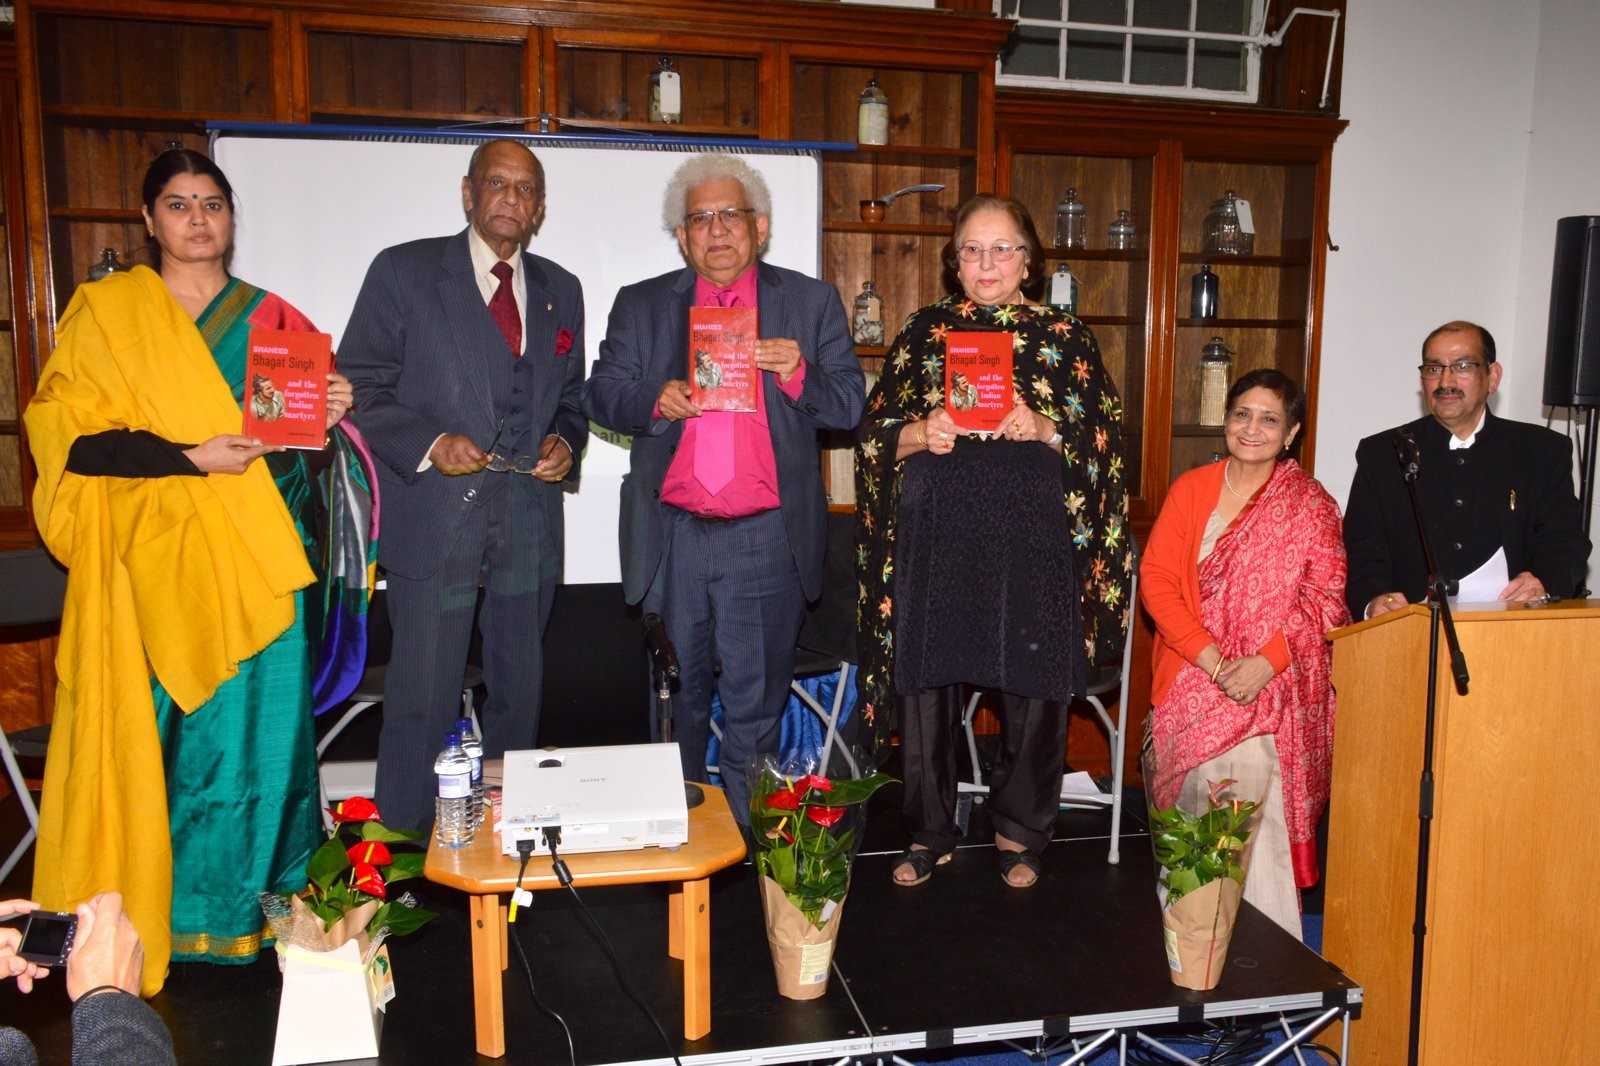 Vatayan Commemorates Shaheed Bhagat Singh at Keats House – Divya Mathur